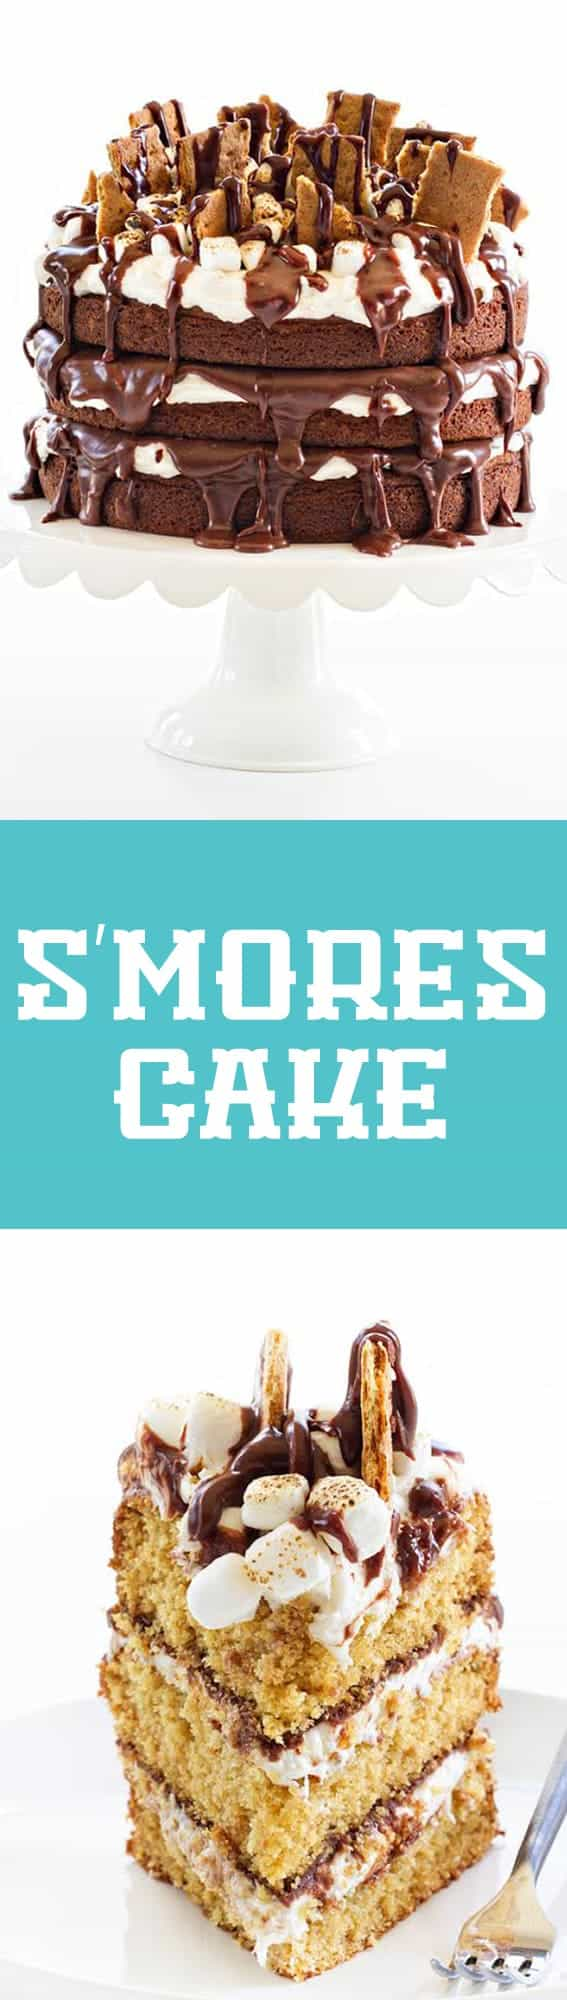 S'mores Cake is every bit as delicious as it sounds. Layers of toasted marshmallow buttercream and silky ganache make this cake absolutely perfect!